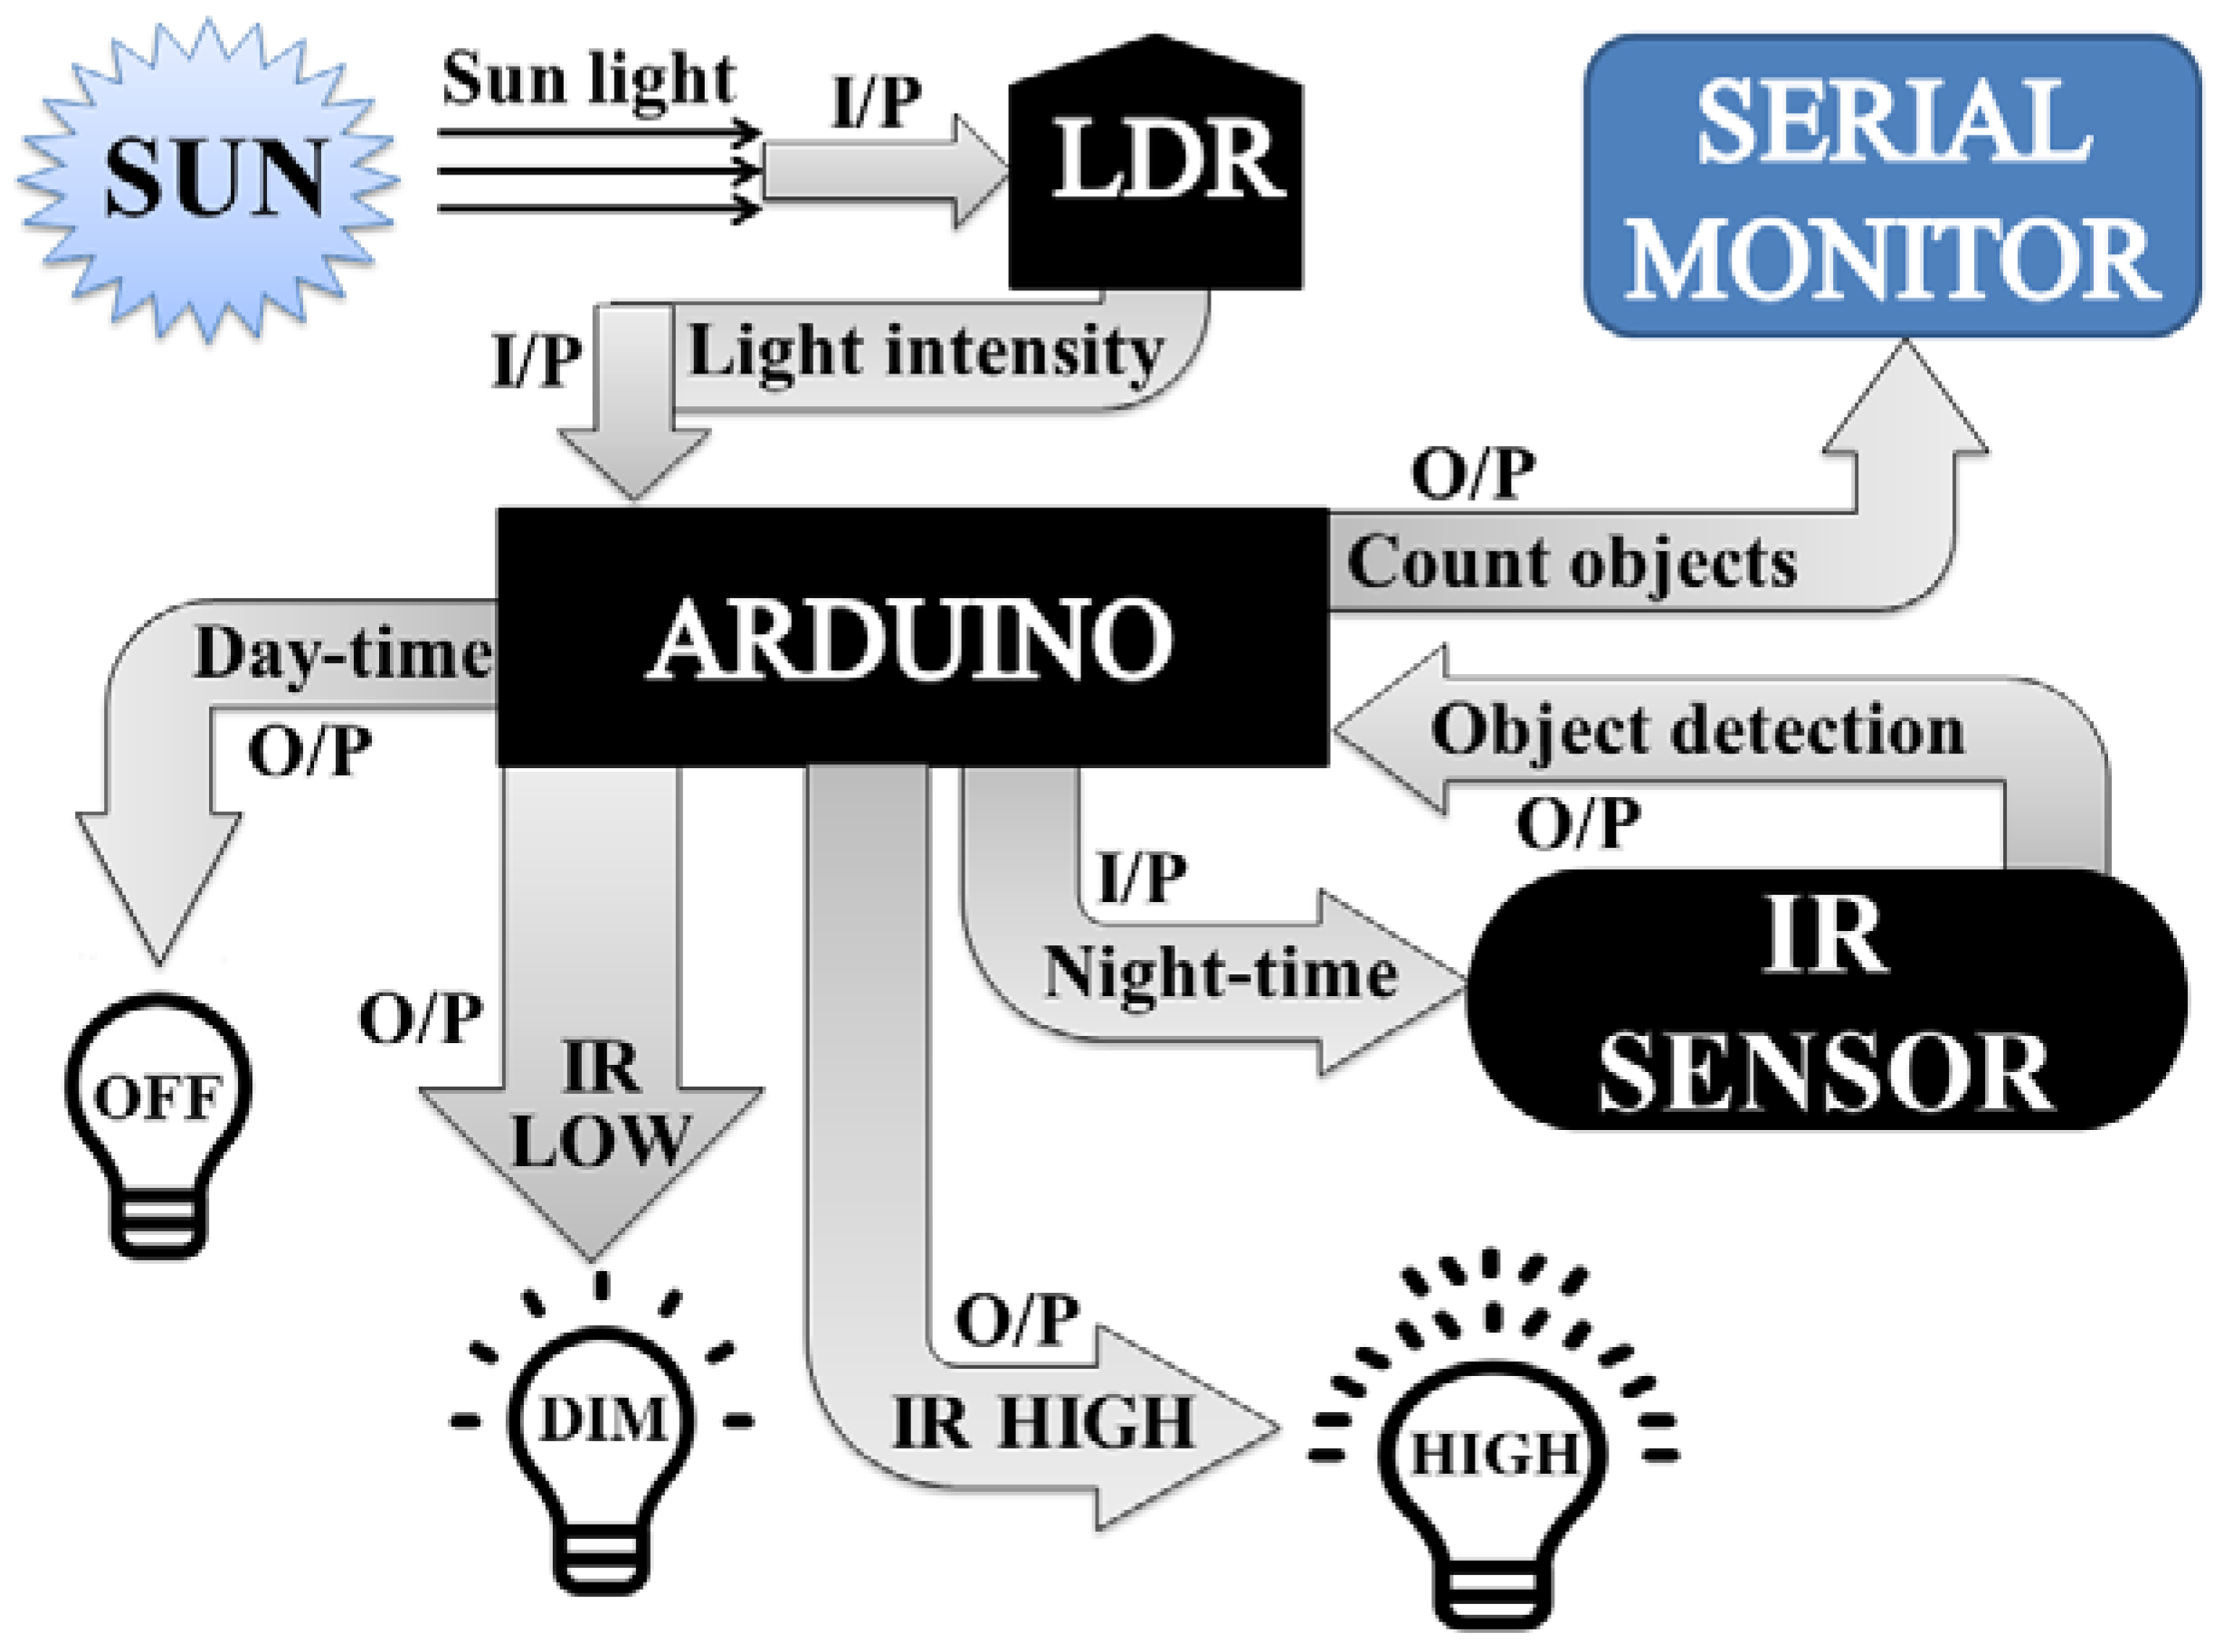 Sensors Free Full Text An Automation System For Controlling Automatic Street Light Ldr Led Circuit 18 03178 G001 Figure 1 The Architecture Design Of